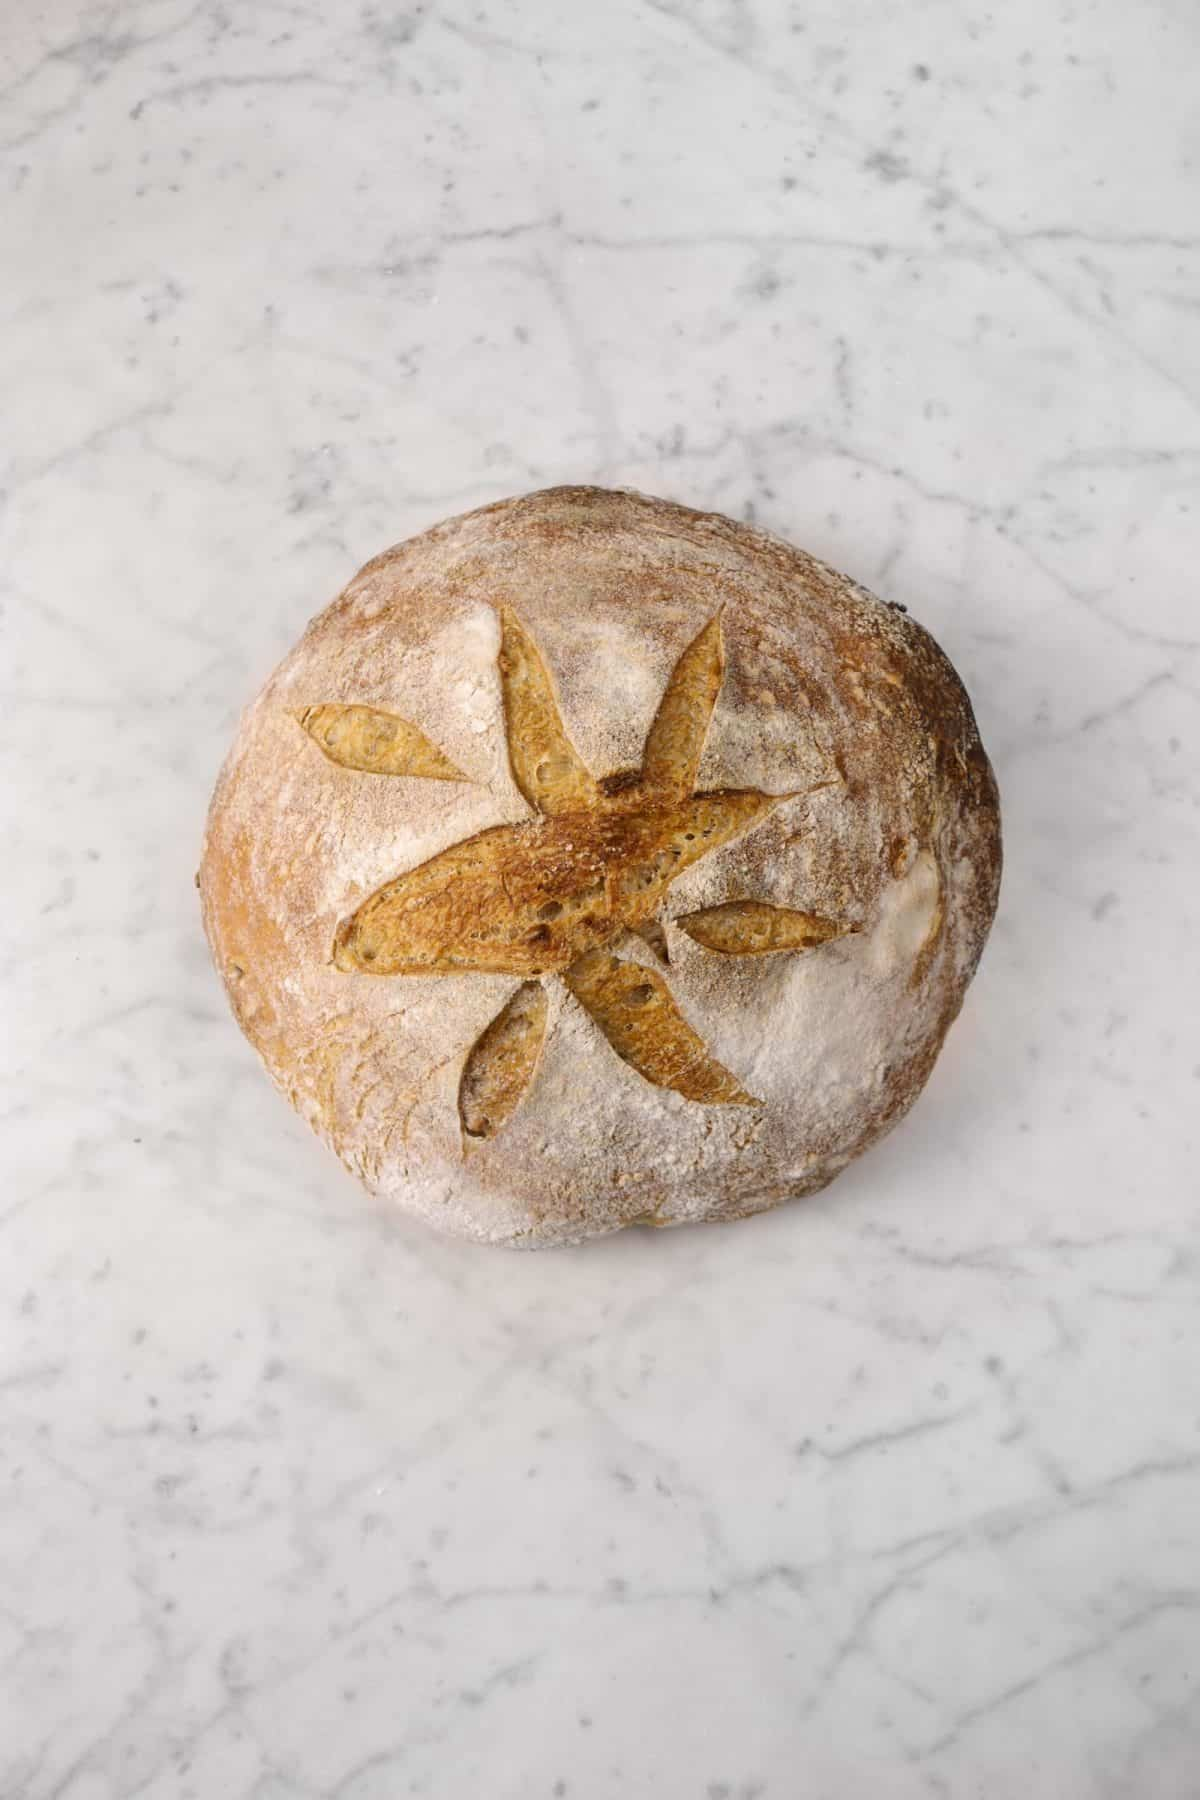 bread on a marble counter